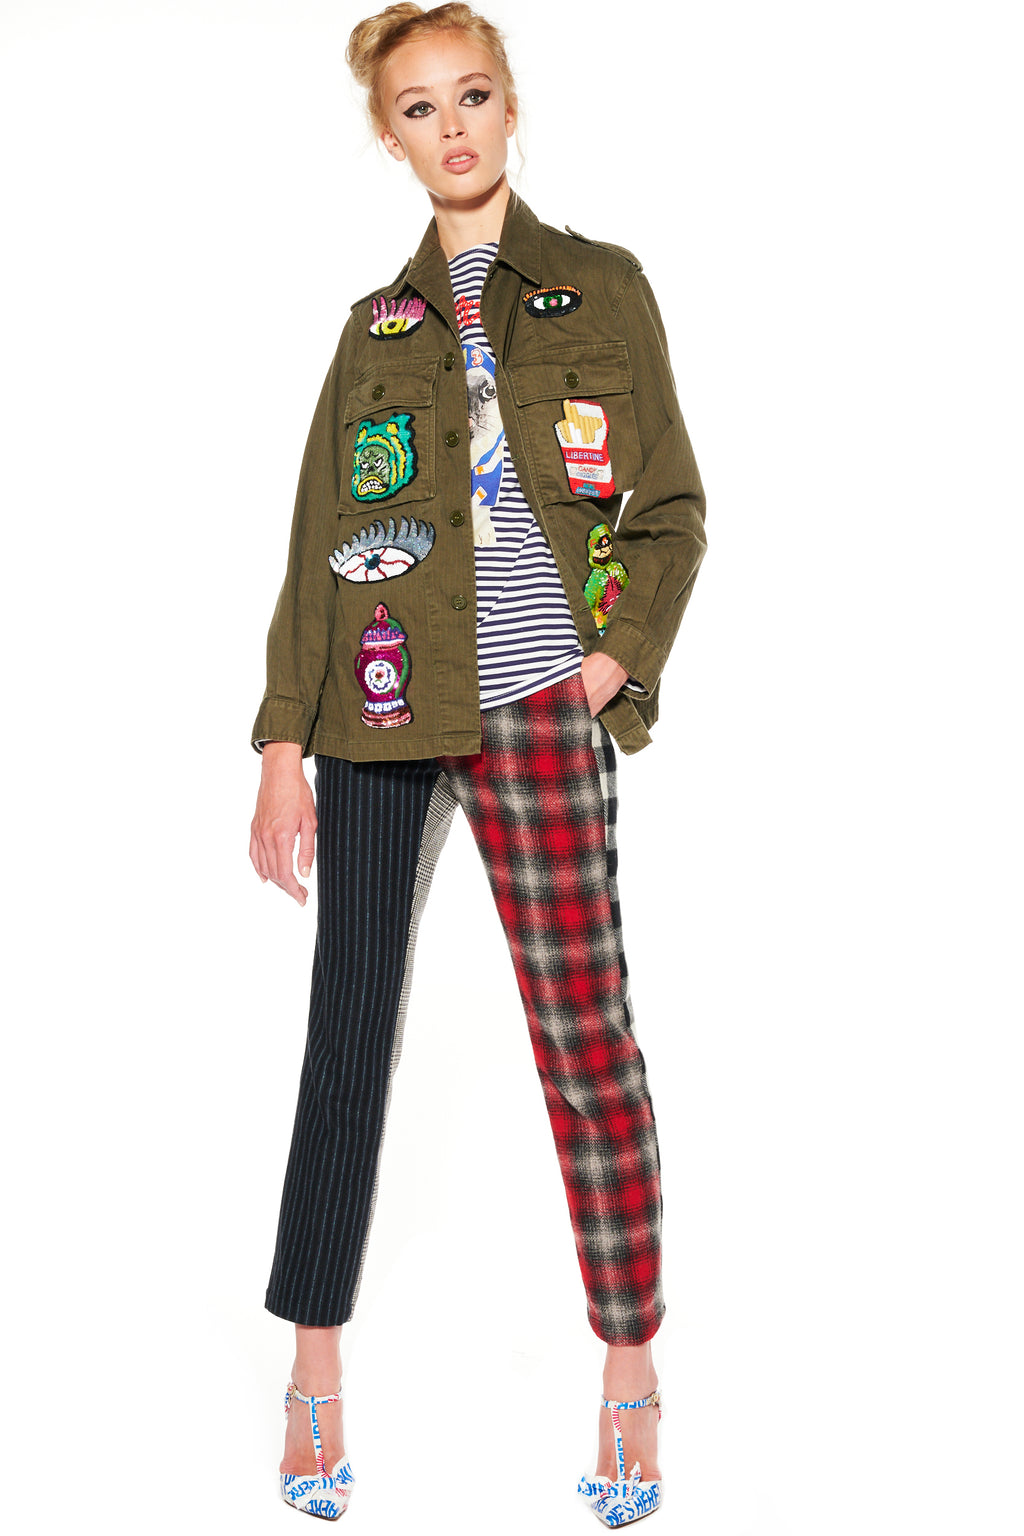 PATCH COLLAGE ARMY JACKET - Women's Jackets & Coats - Libertine